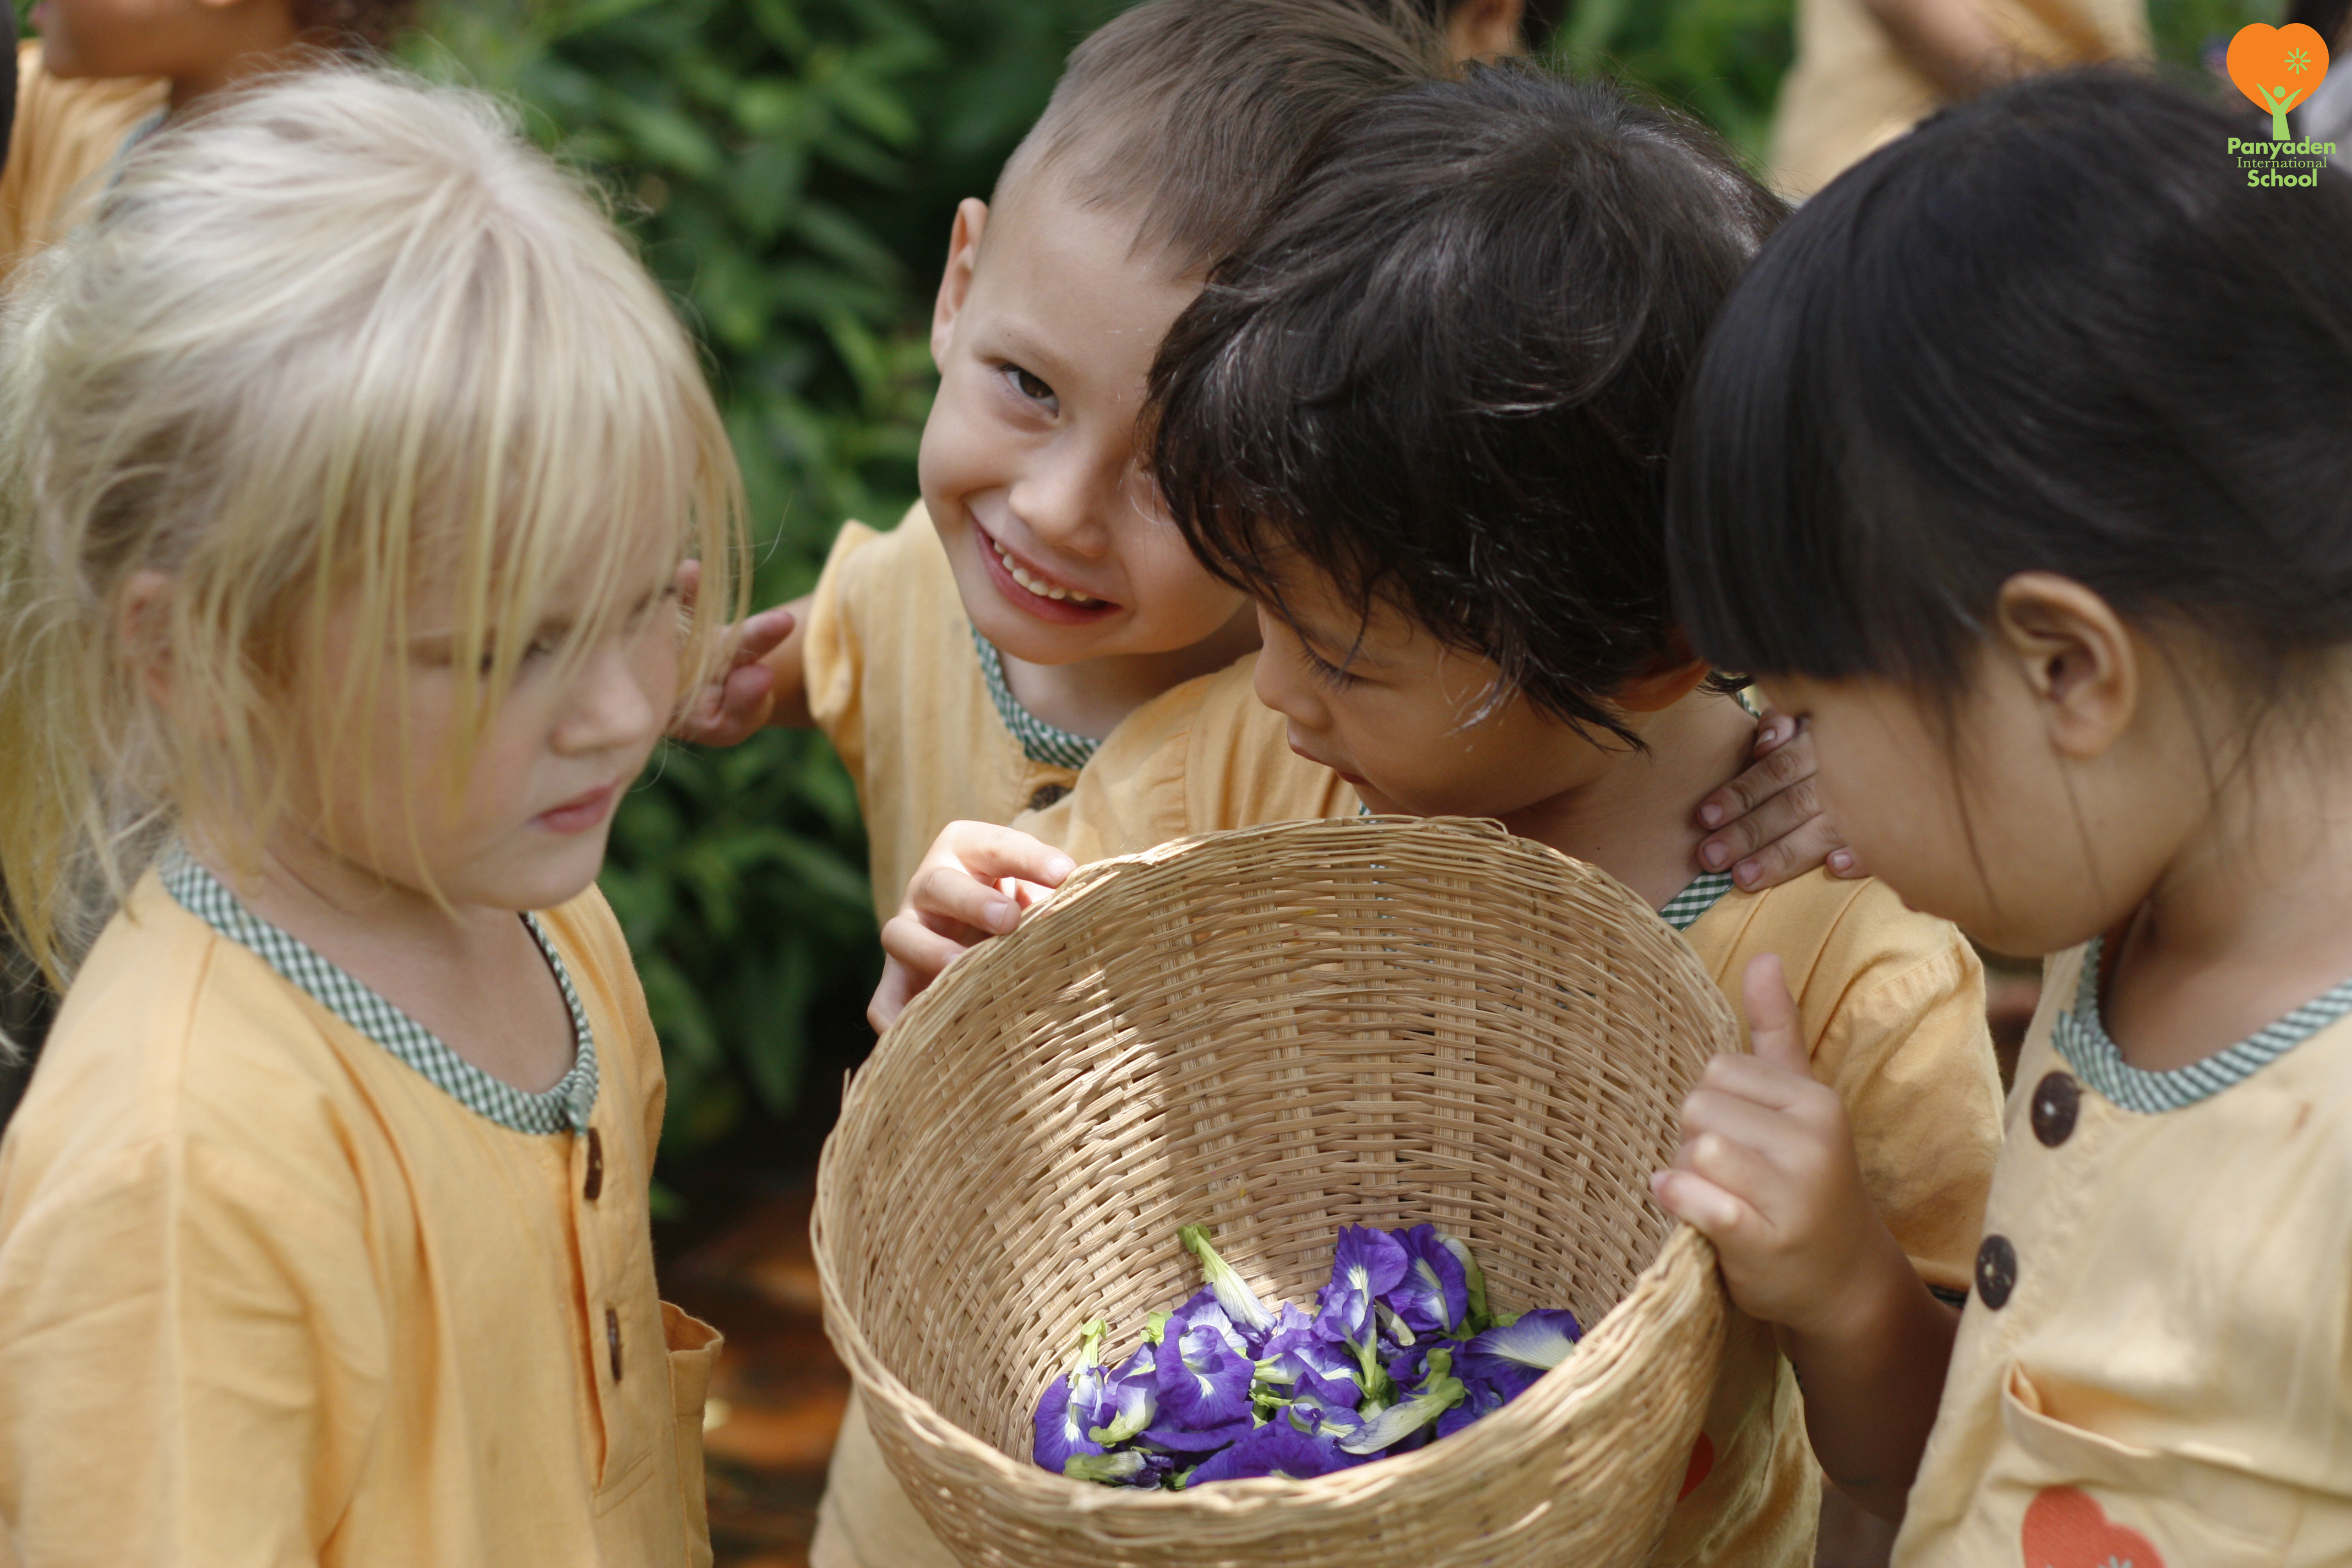 Panyaden International School kindergarten 2 students picking butterfly pea flowers to make natural dyes for painting